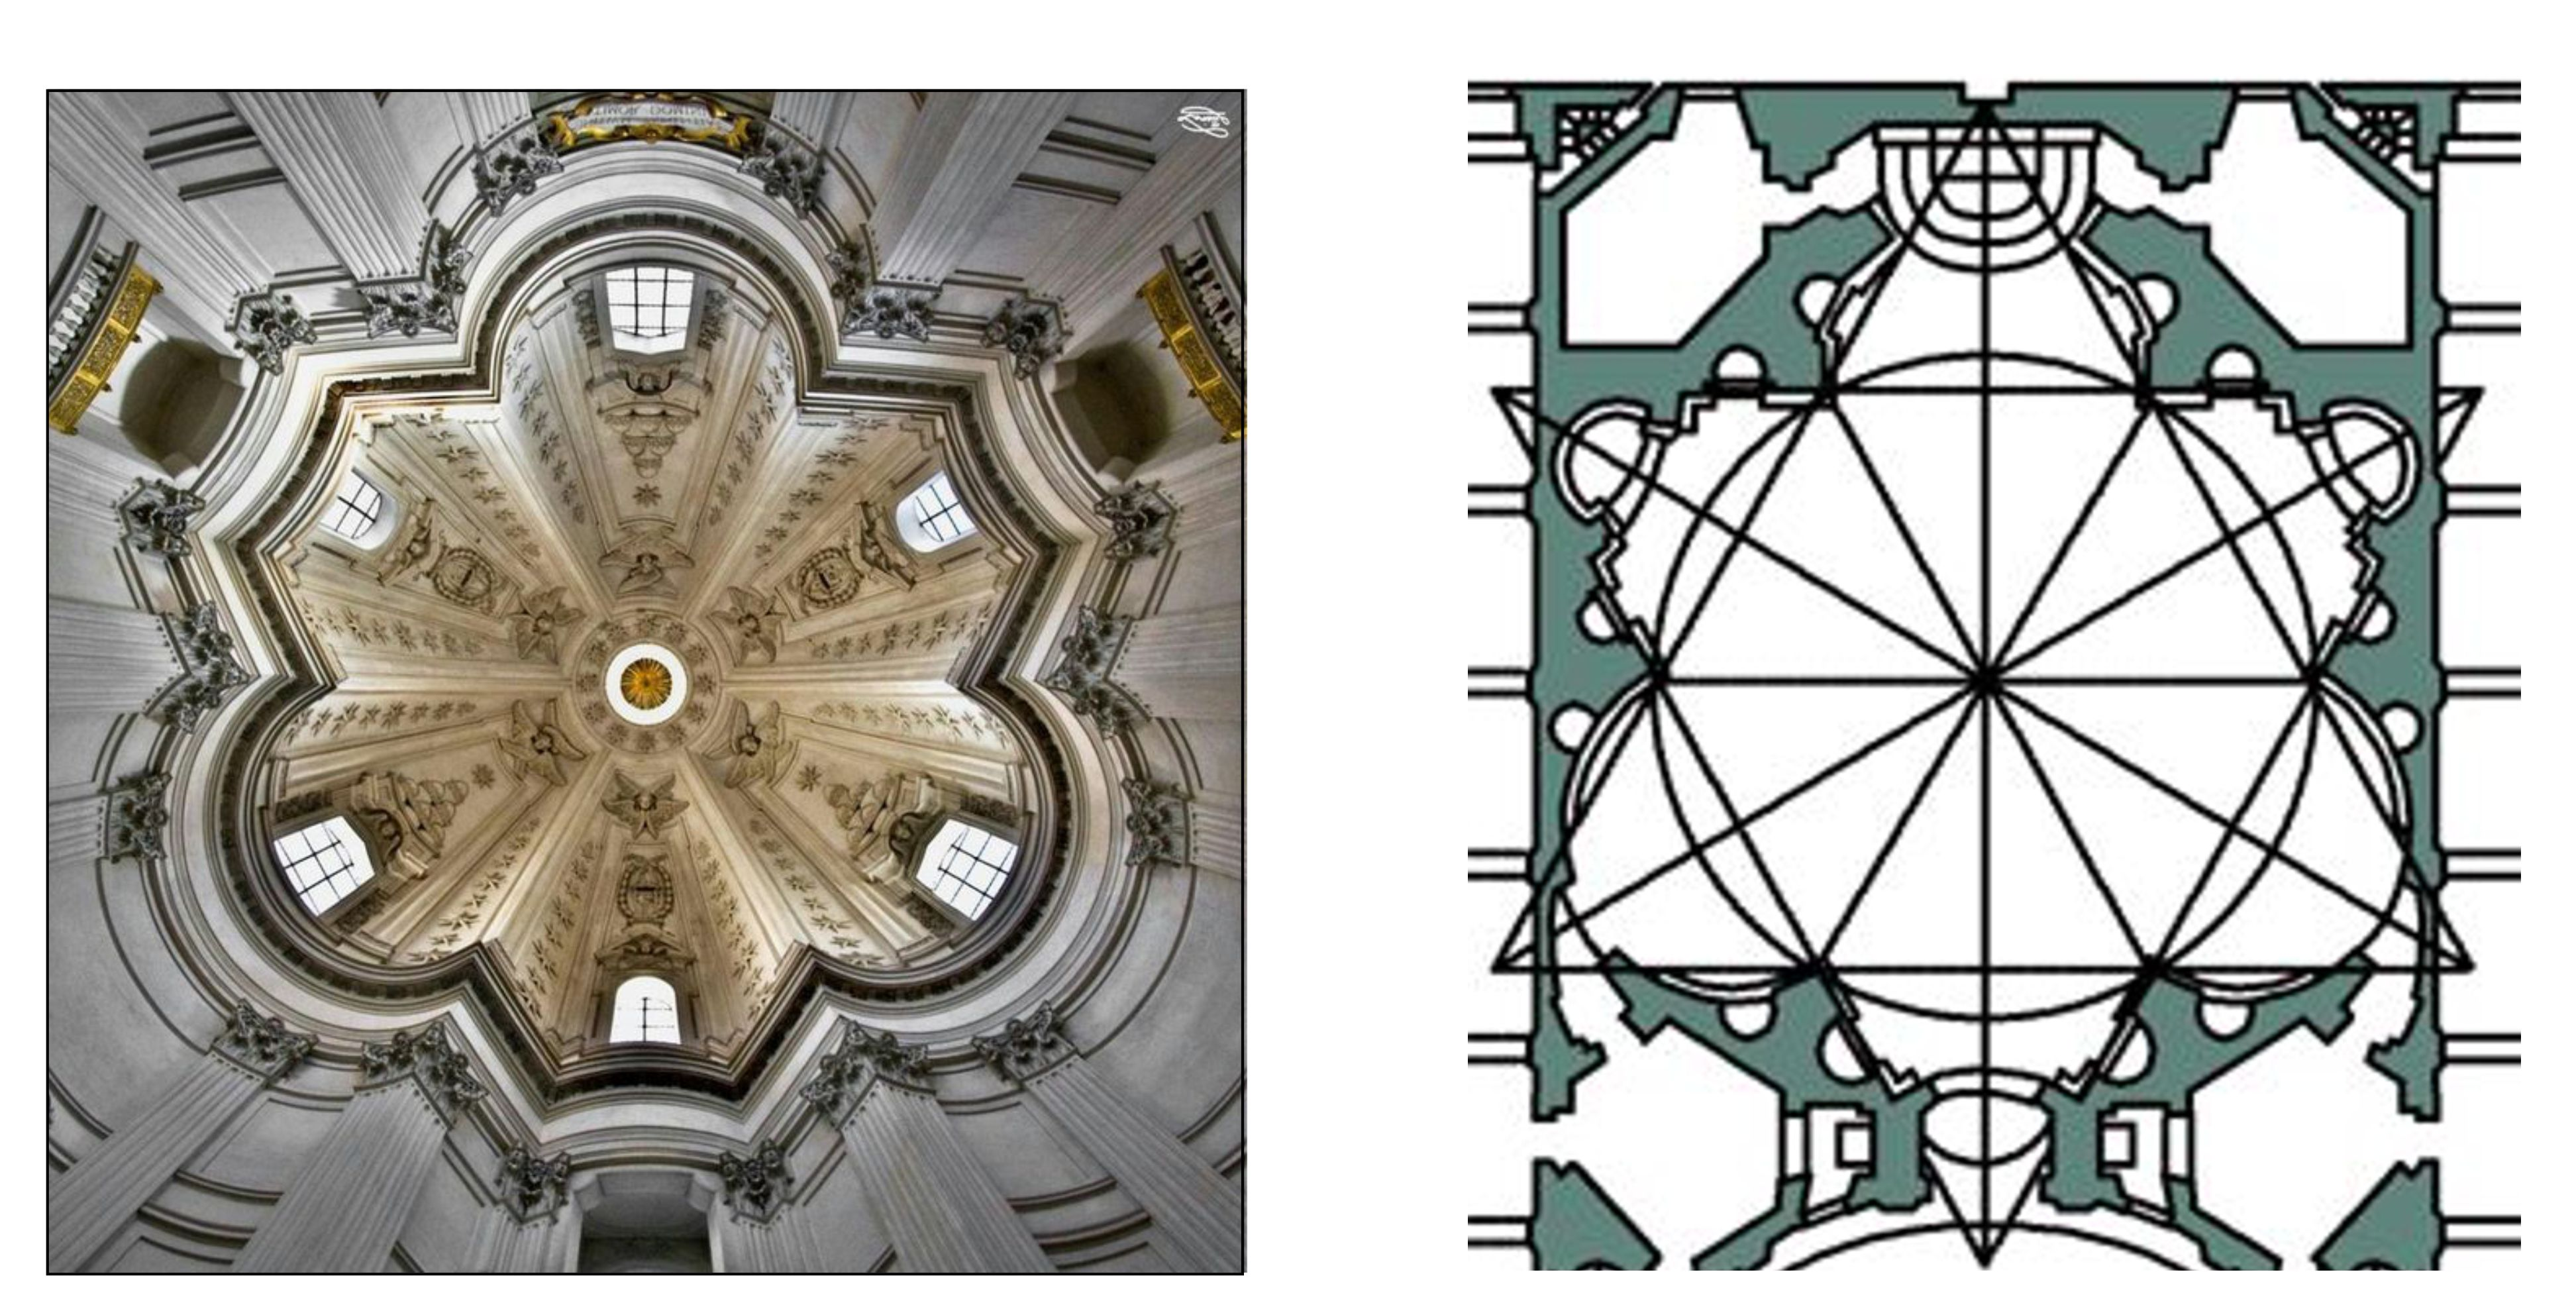 The Young Borromini and the use of geometry